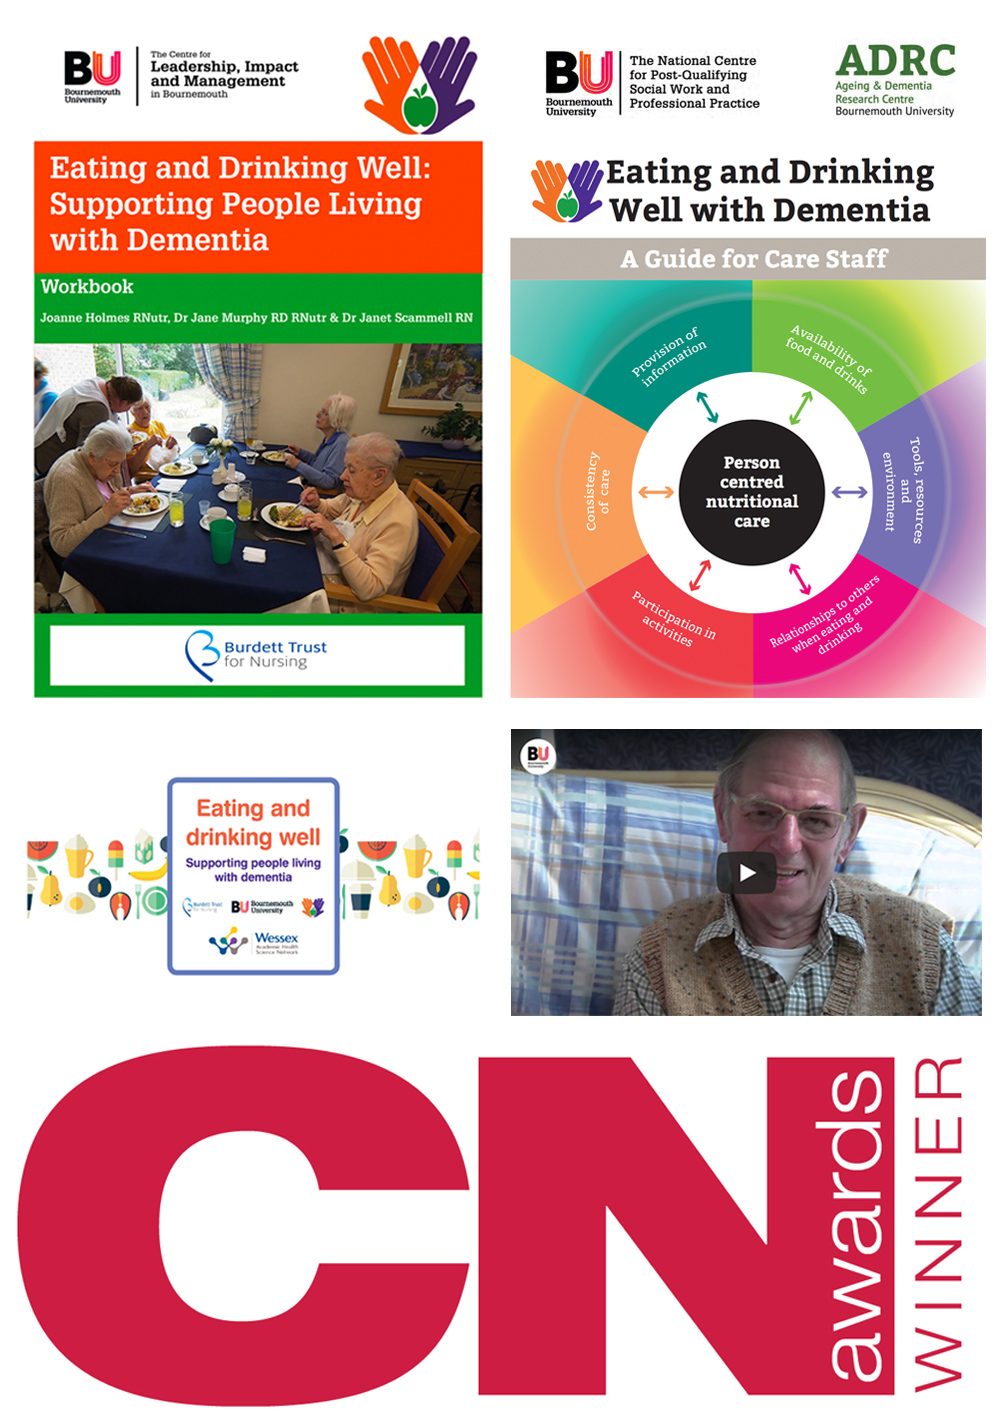 The Eating and Drinking Well with Dementia Toolkit